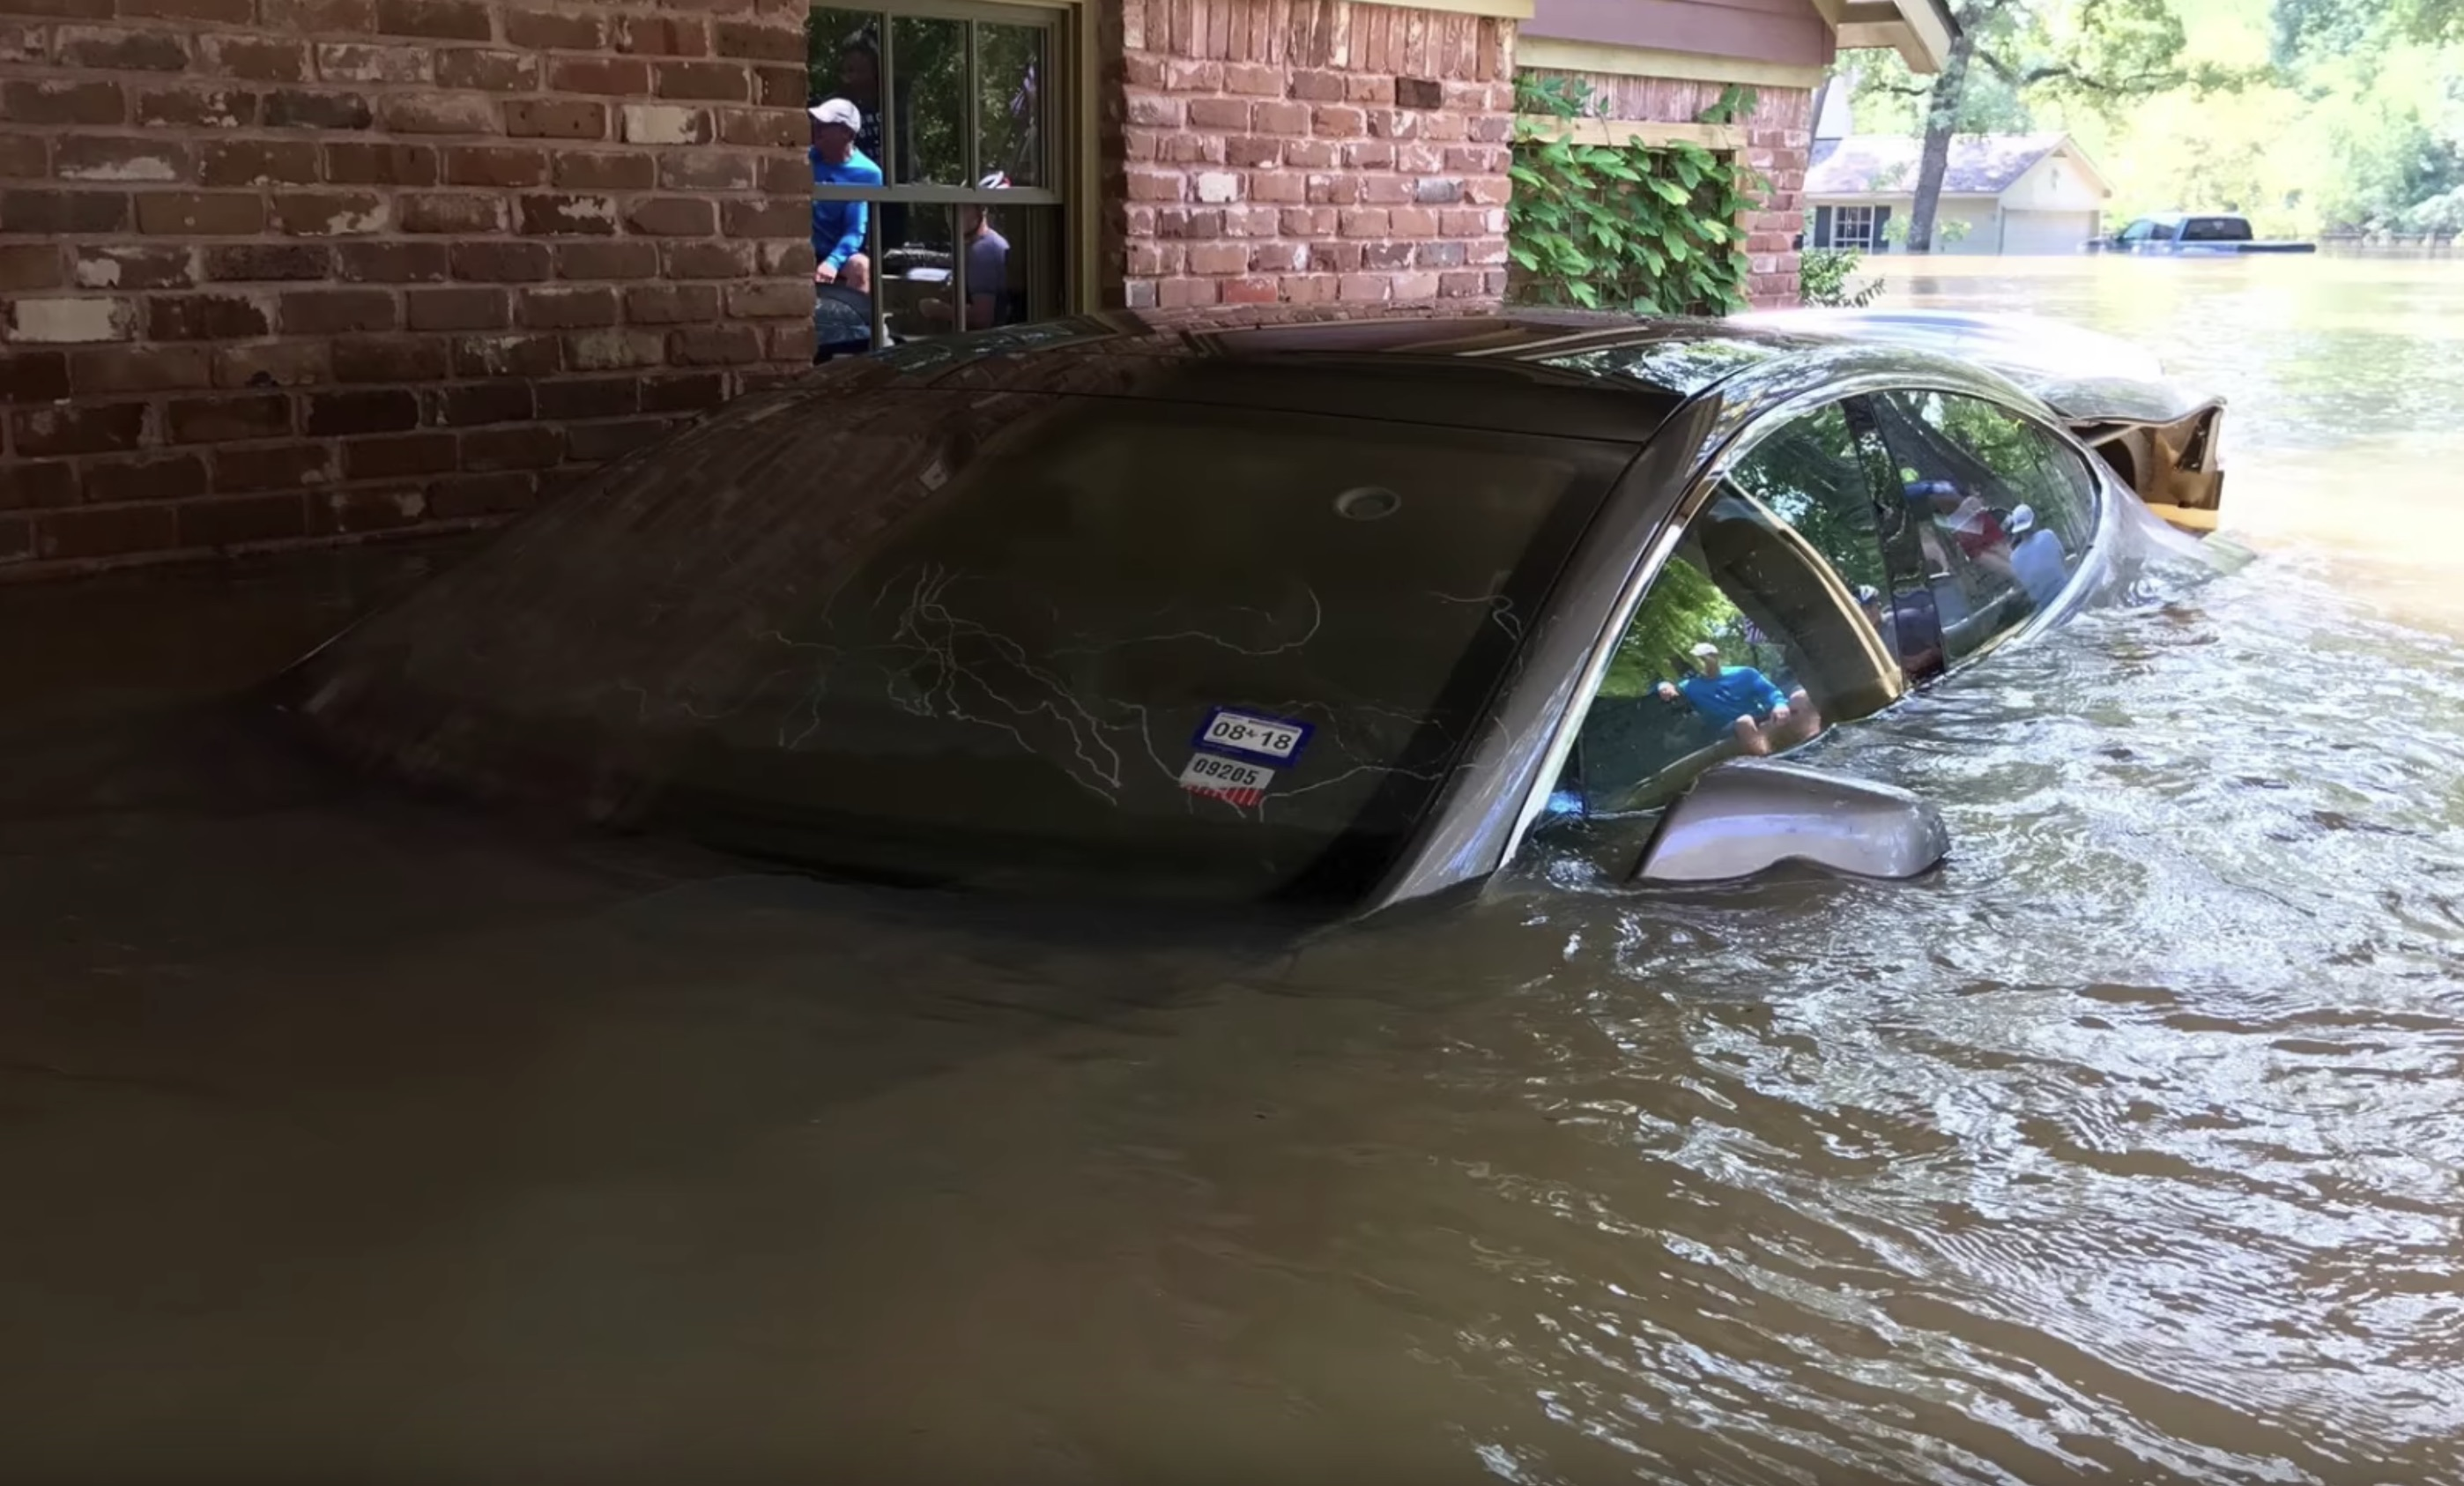 tesla-model-s-underwater-flood